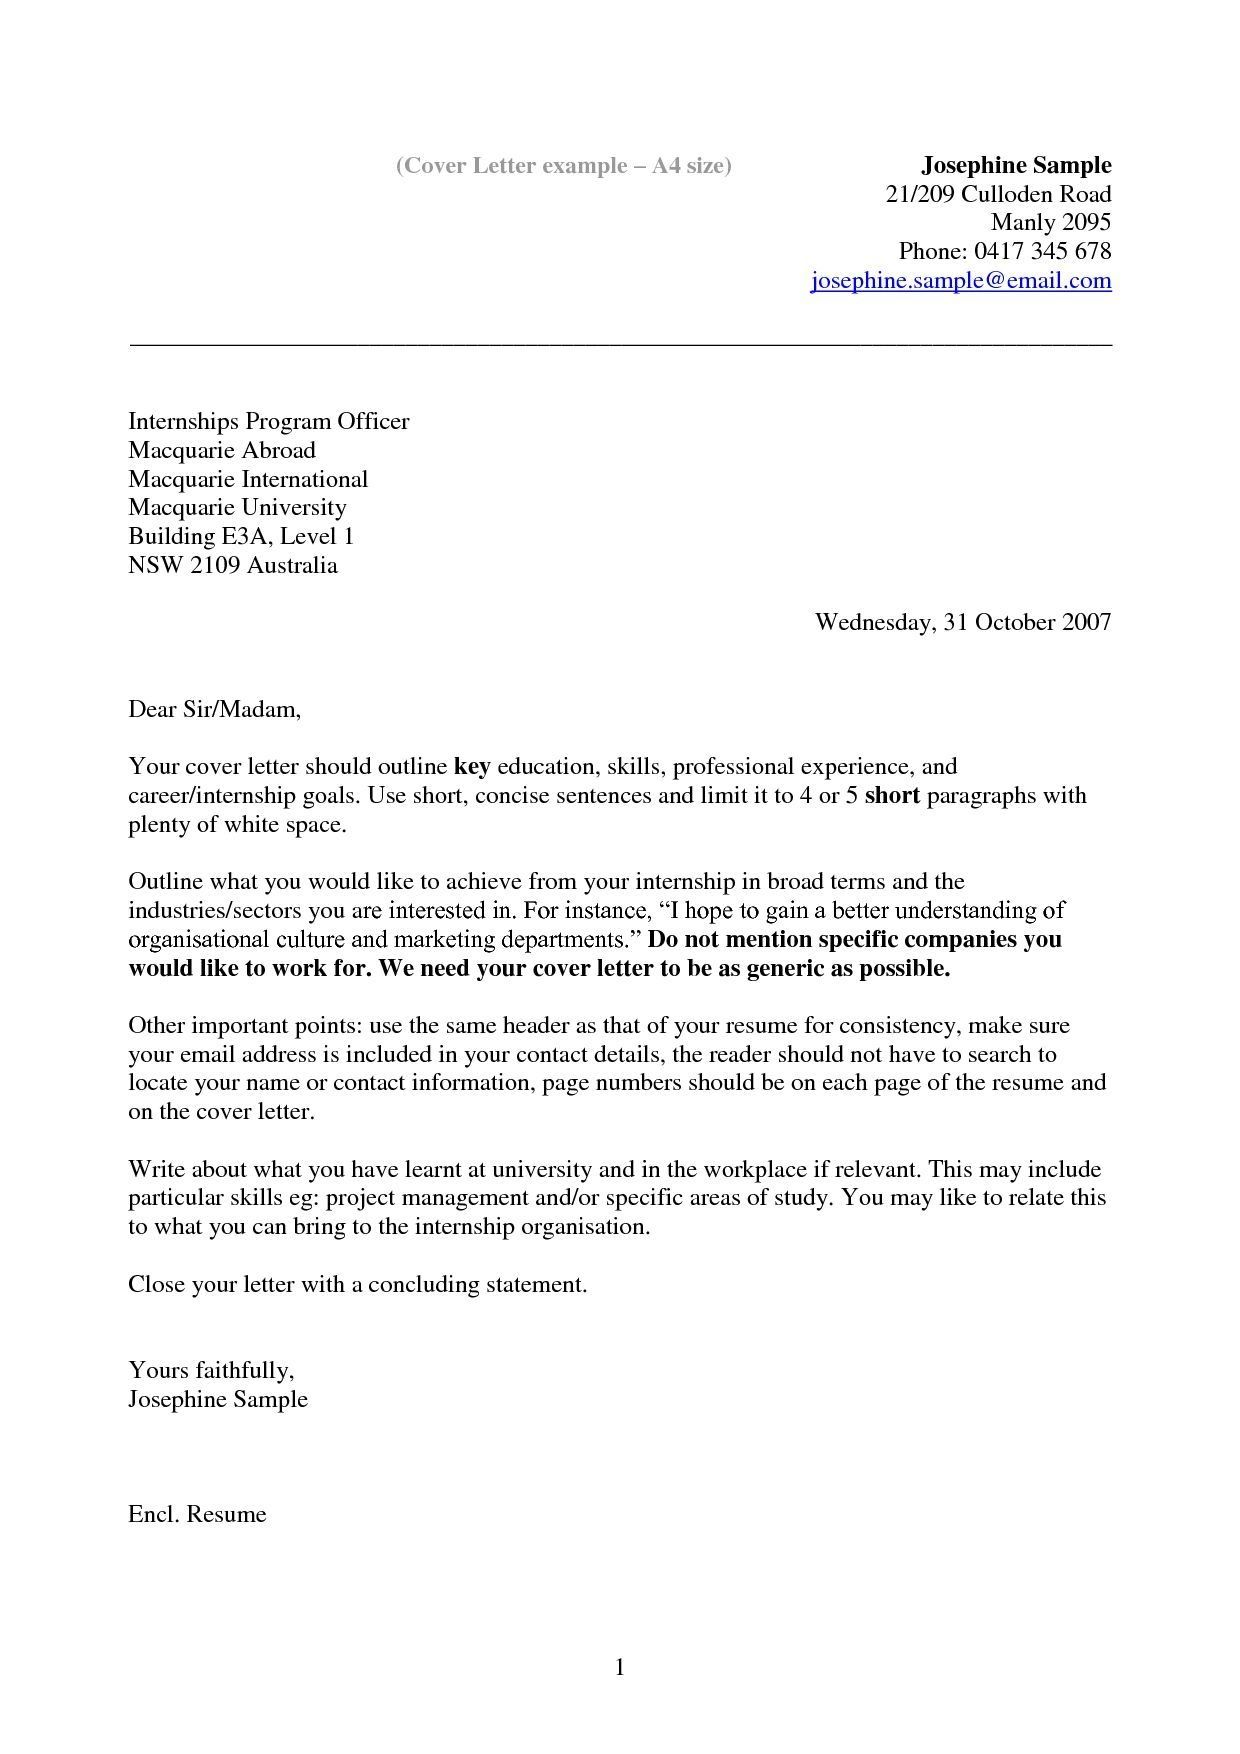 Cover Letter Template Quora Cover Letter For Resume Job Cover Letter Writing A Cover Letter